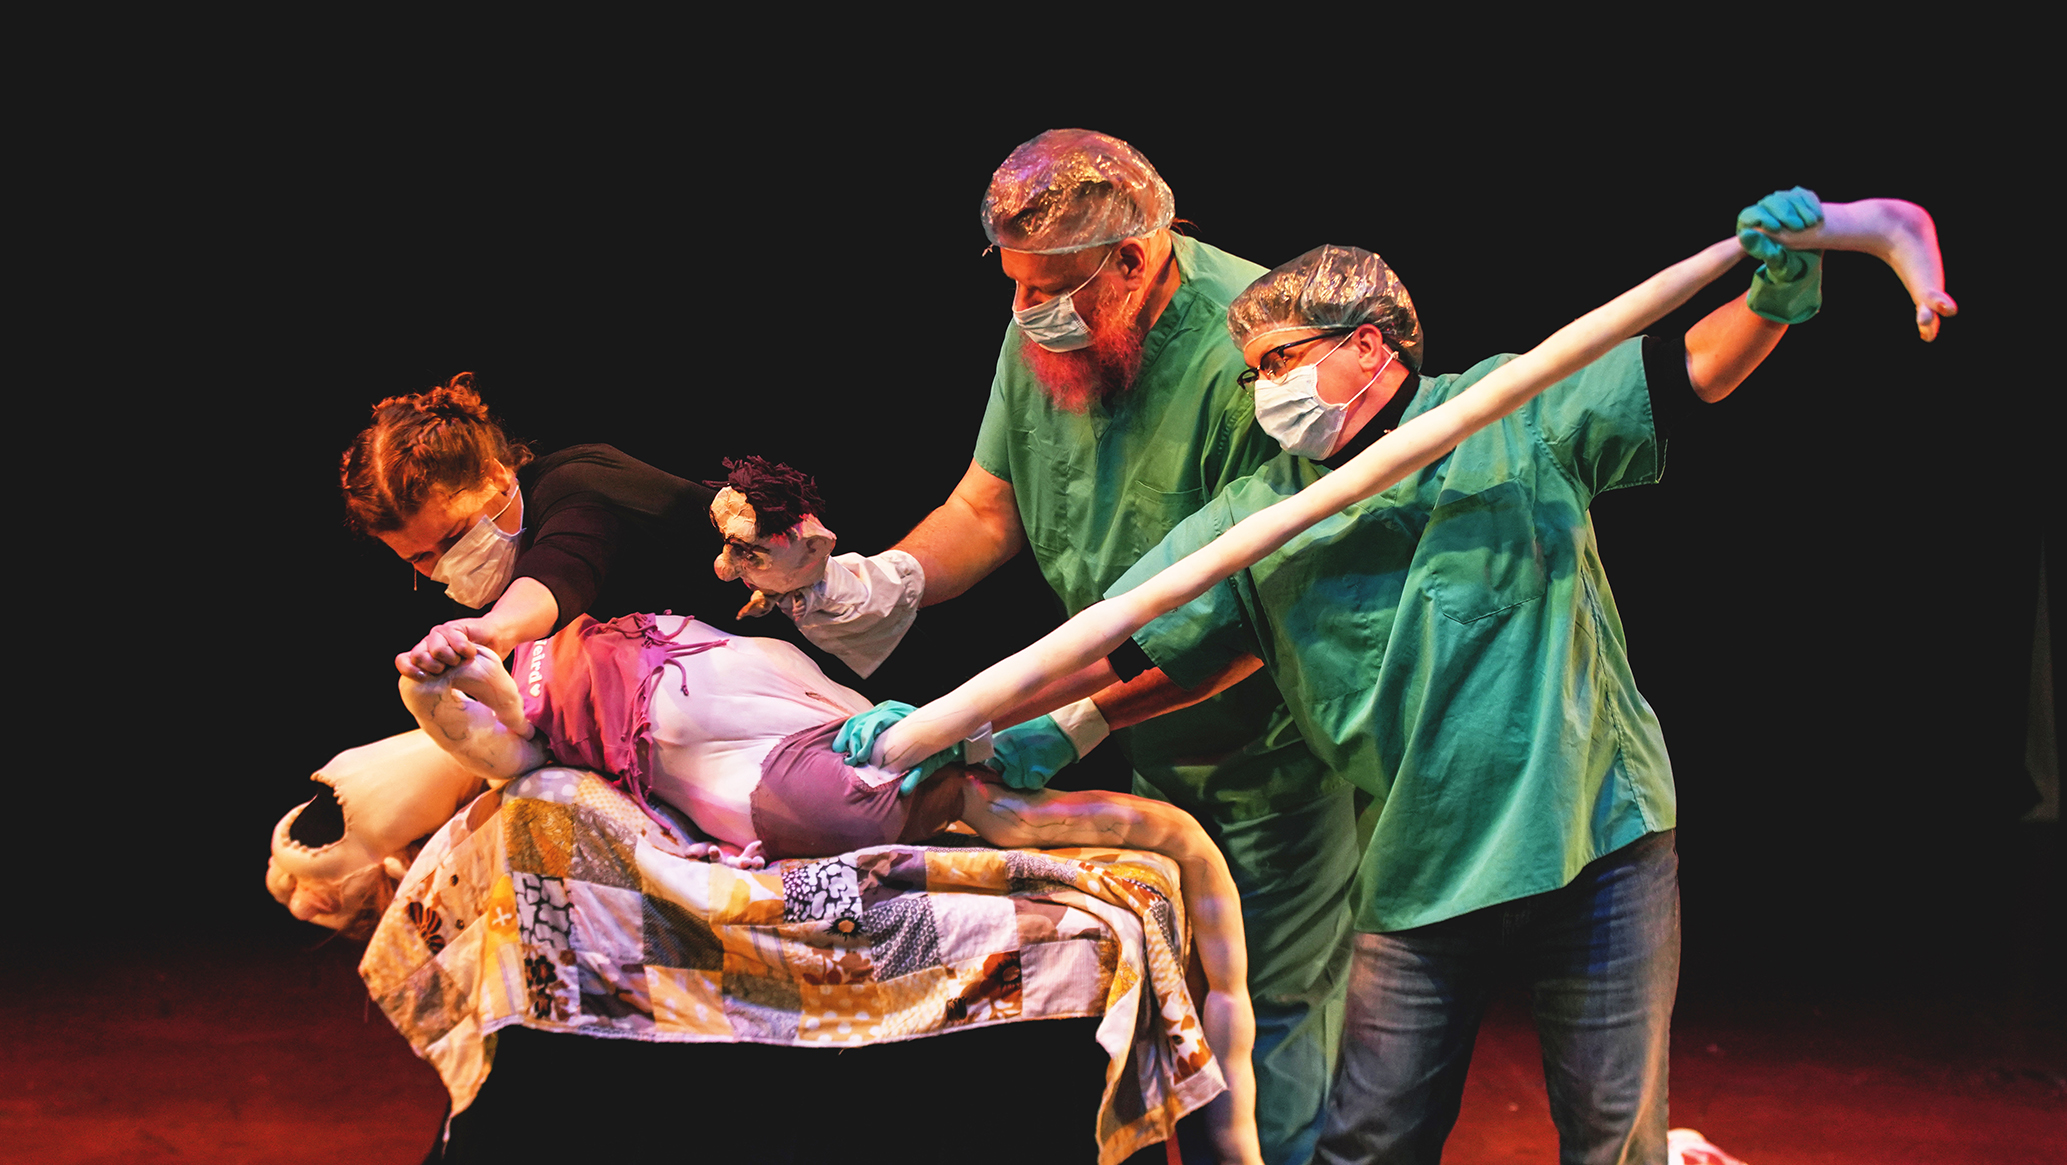 three performers surround a puppet